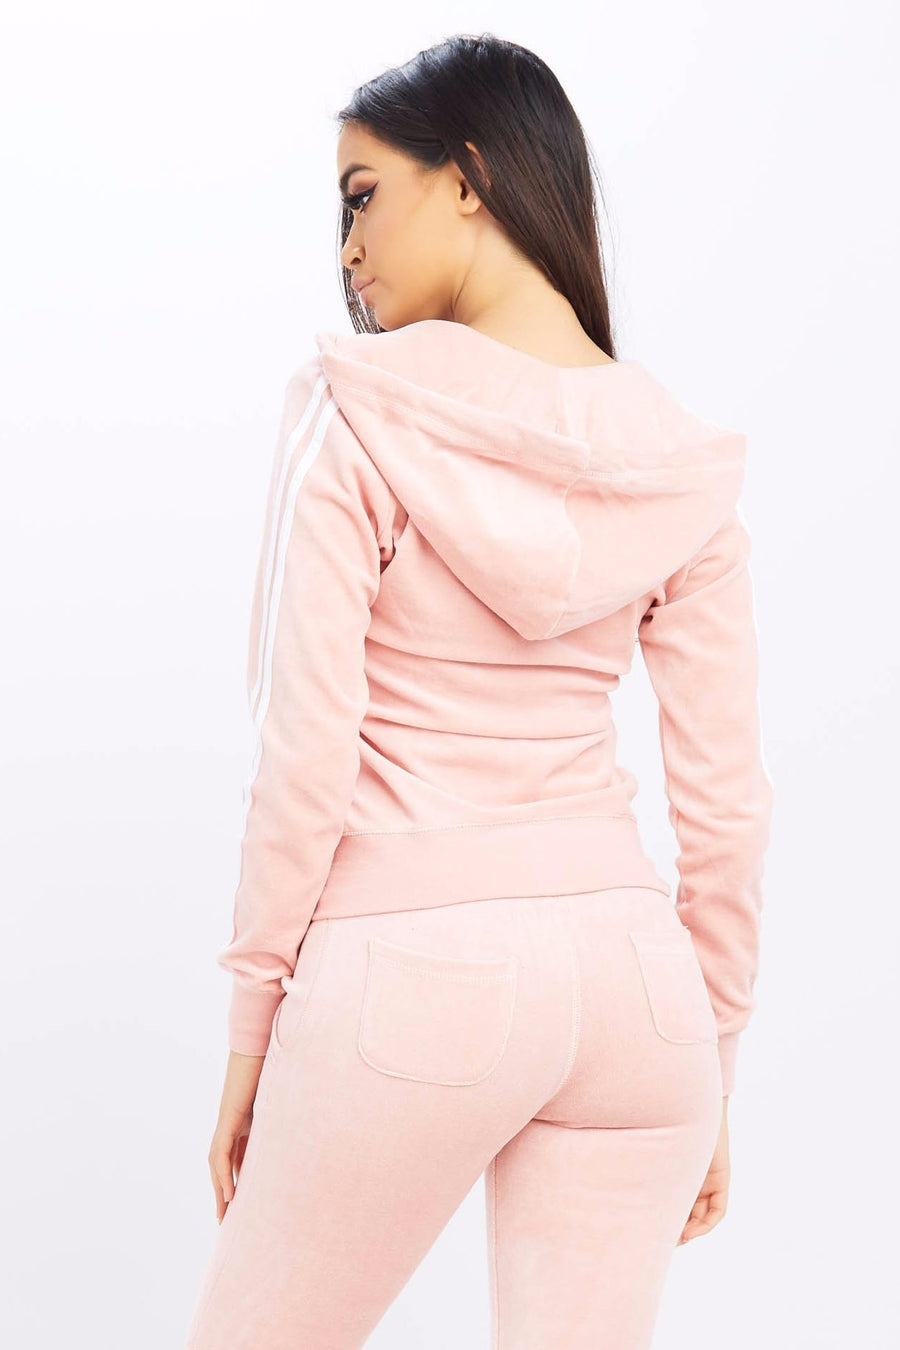 Little Piece of Heaven Hoodie - HoneyBum